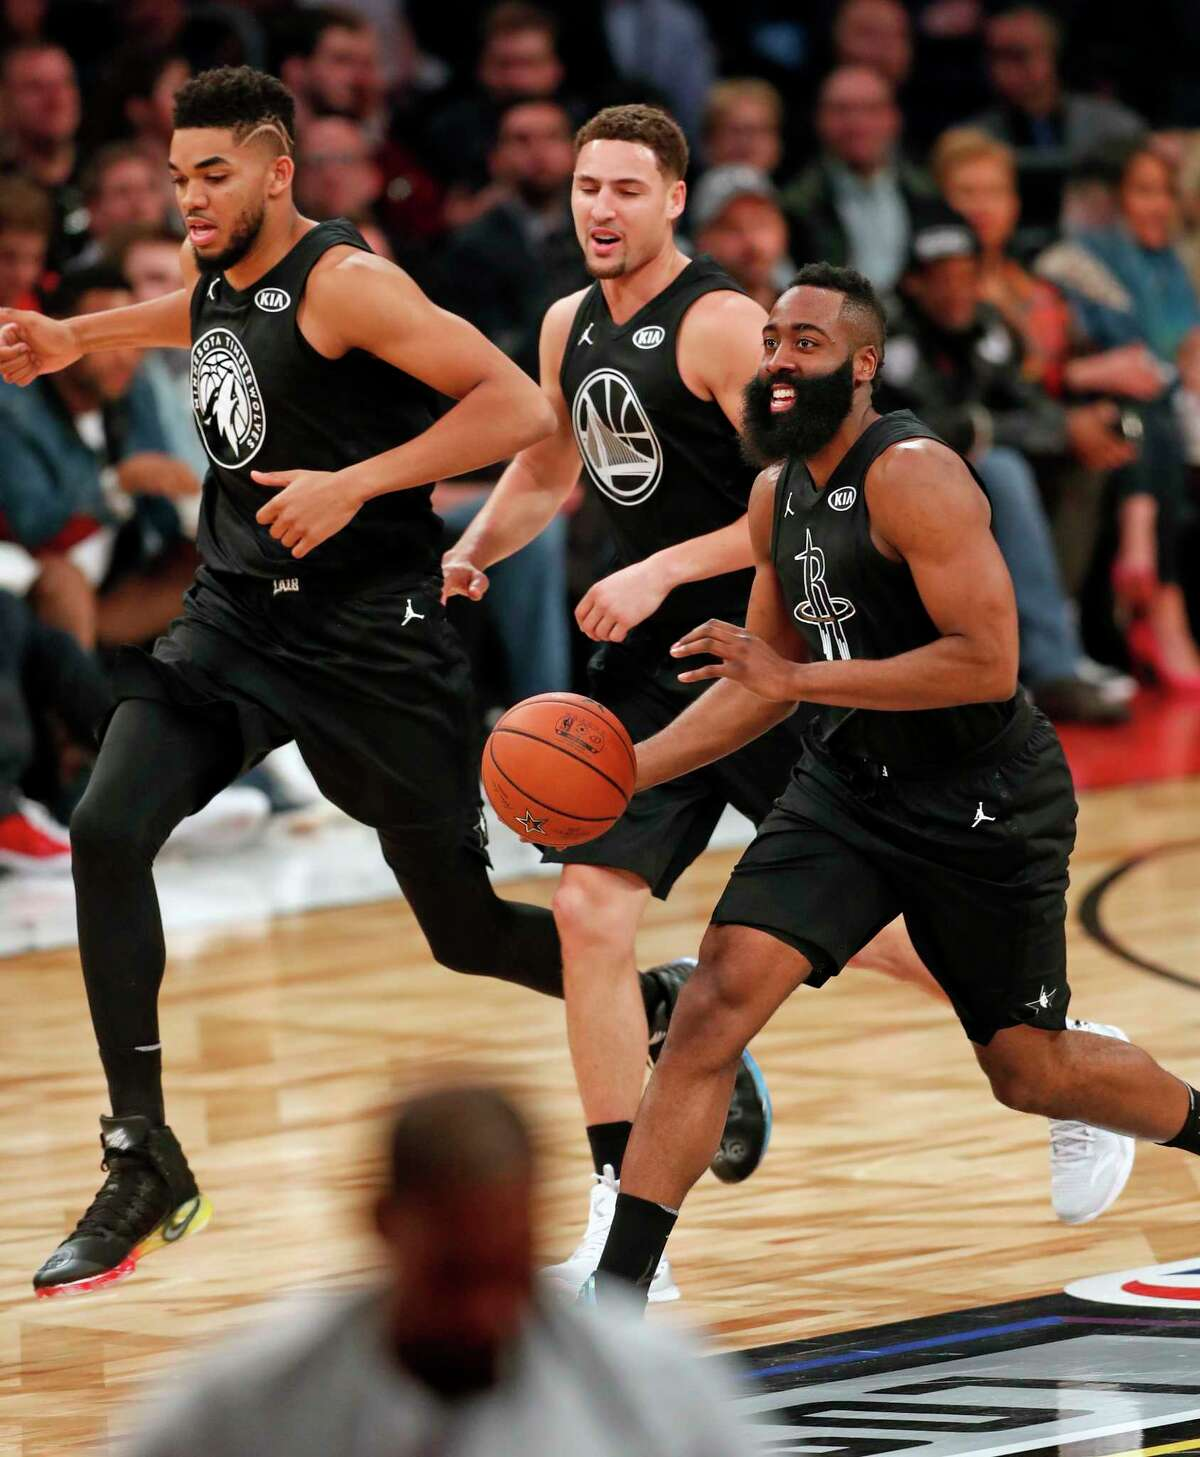 Team Stephen's James Harden, Kley Thompson and Karl-Anthony Towns head up court against Team LeBron in 2nd quarter during NBA All Star Game at Staples Center in Los Angeles, Calif., on Sunday, February 18, 2018.